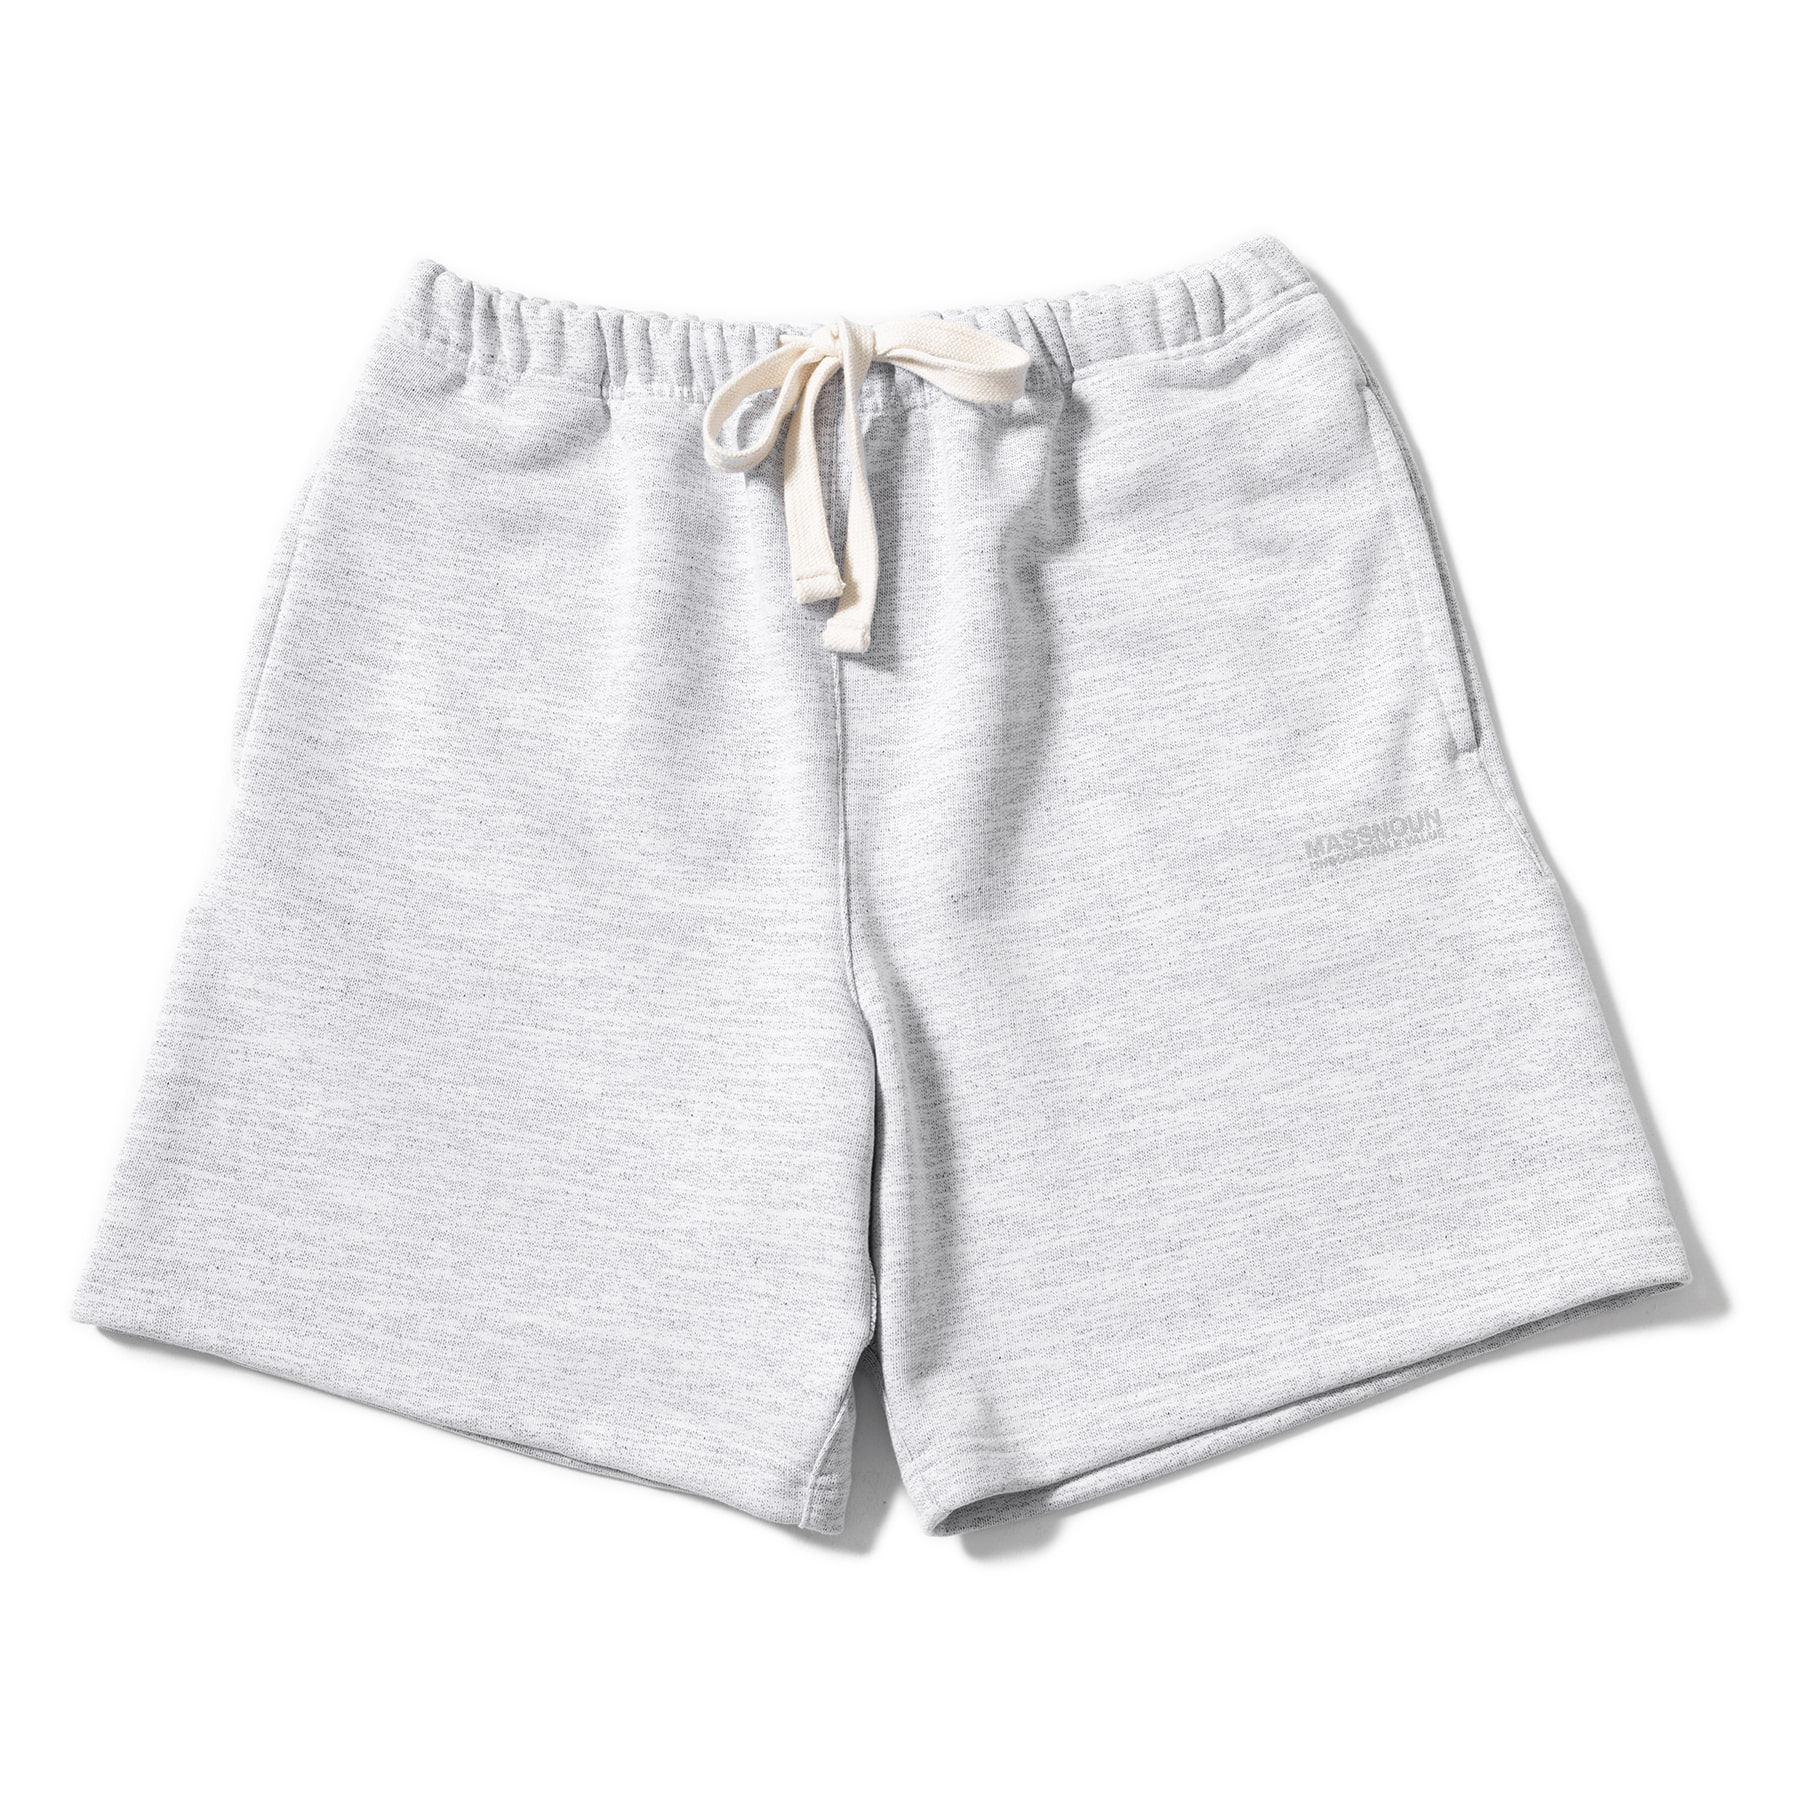 SCOTCH TRAINING SHORT PANTS MSOSP001-GY